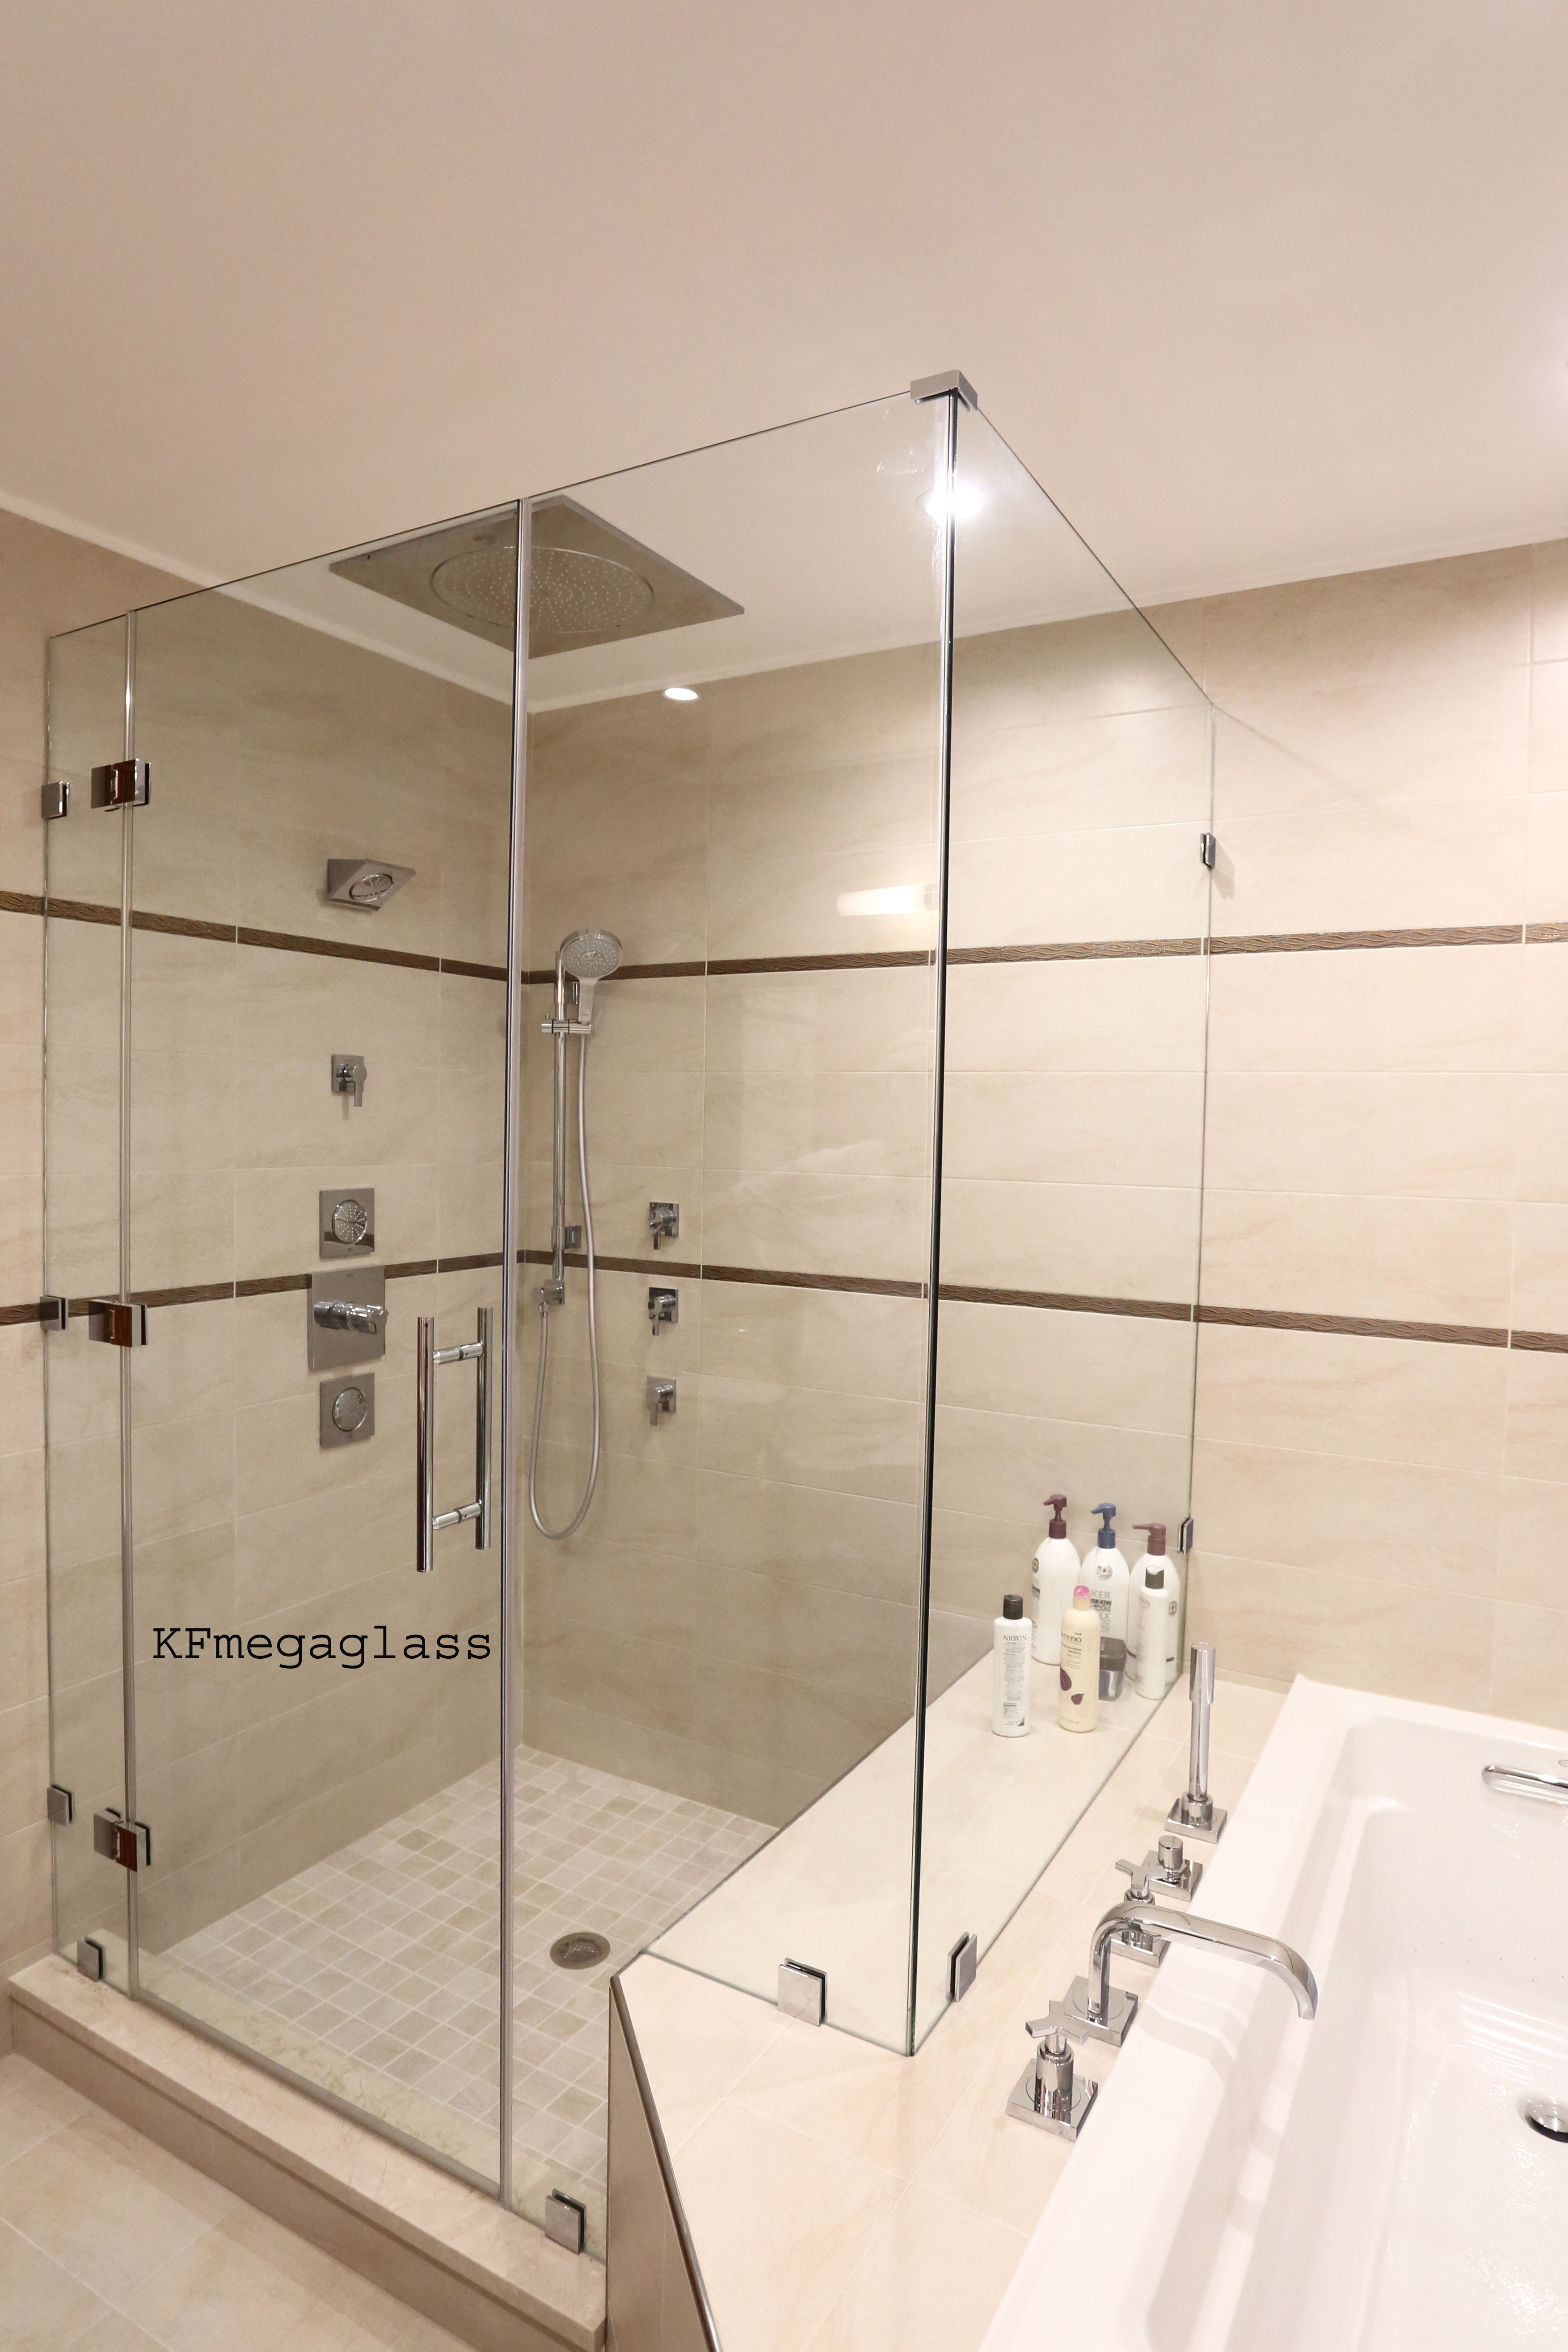 Frameless Shower Doors Are Made To Order Giving Every Client The